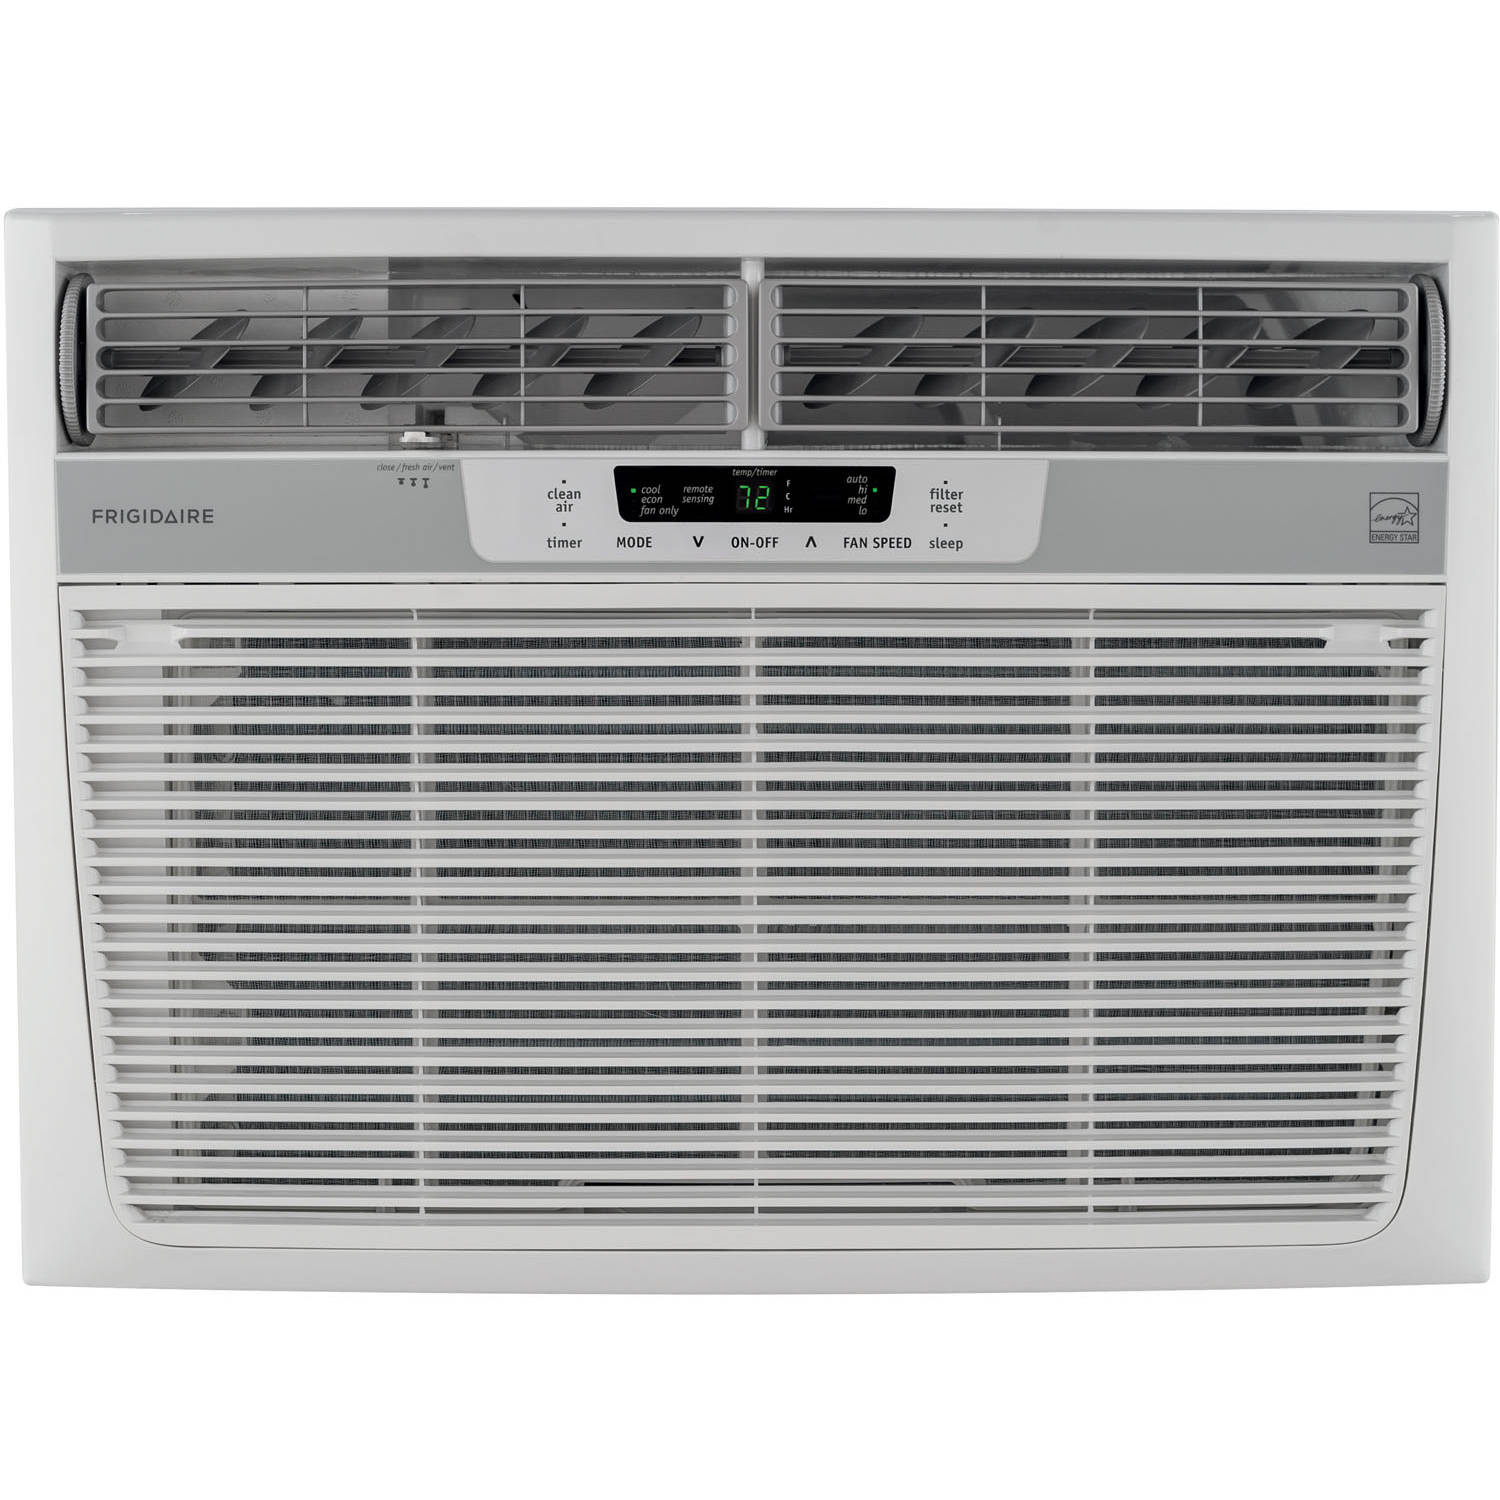 Energy Star 15,100 BTU 115V Window-Mounted Median Air Conditioner with Temperature Sensing Remote Control